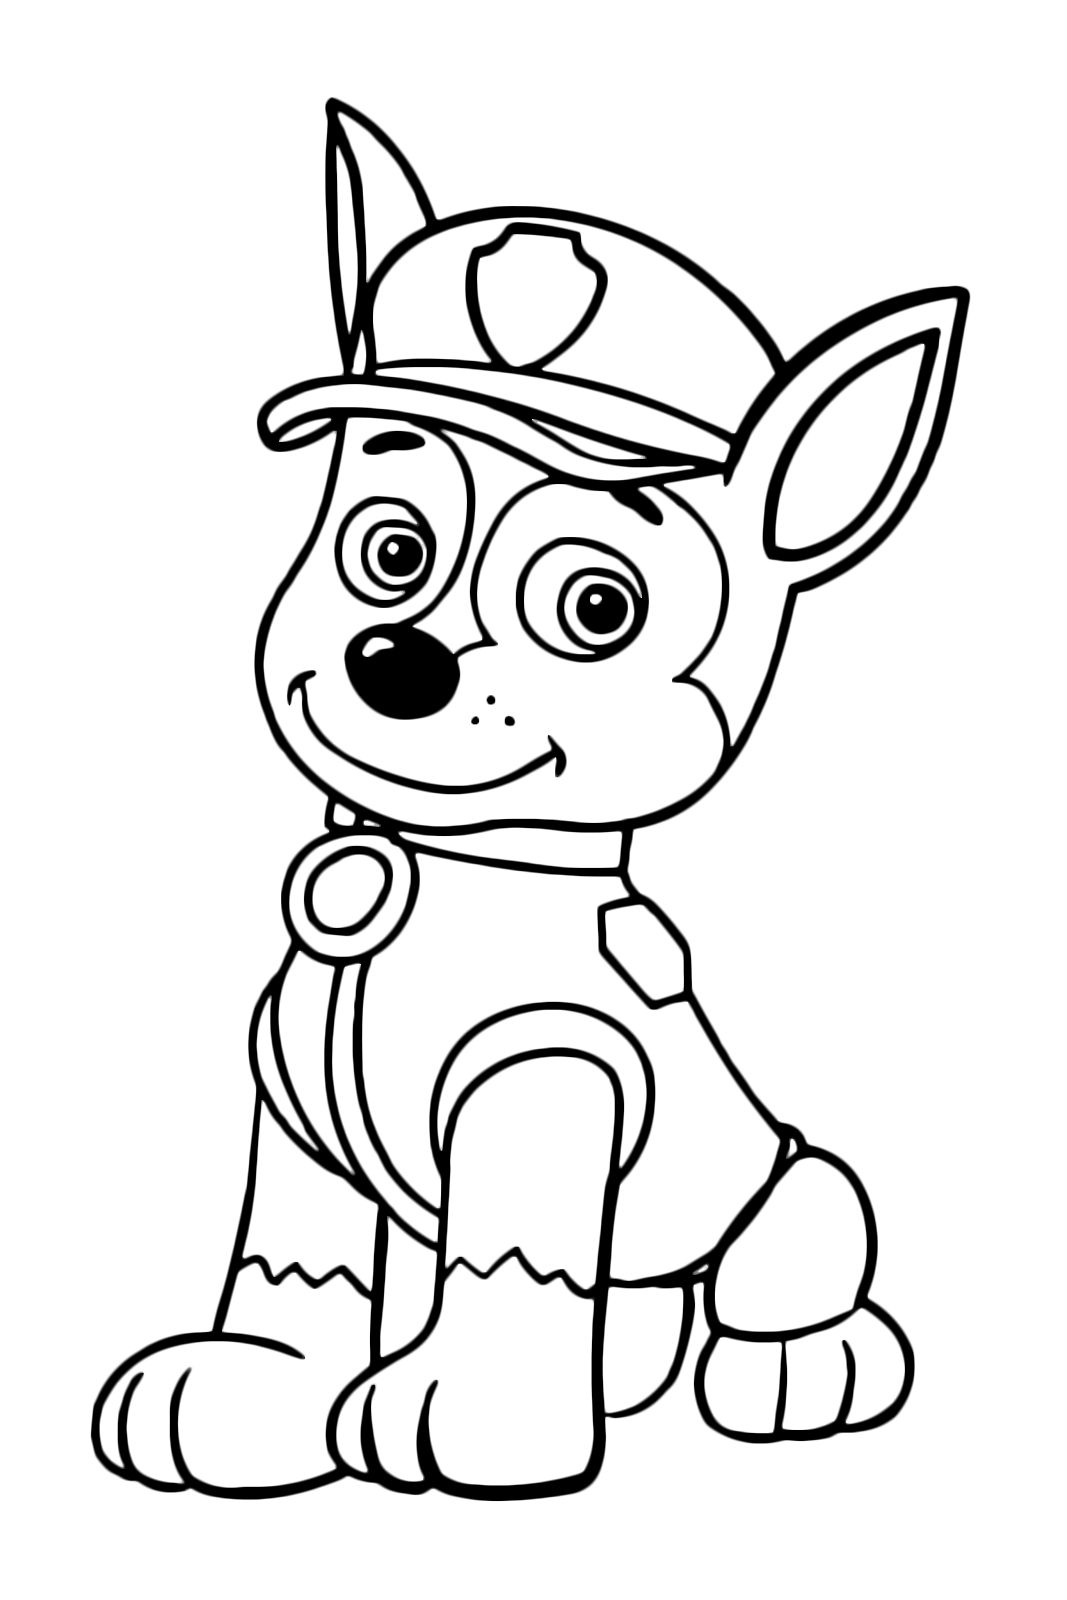 Coloring Pages Of Chase Paw Patrol : Paw patrol chase il cane poliziotto si riposa seduto